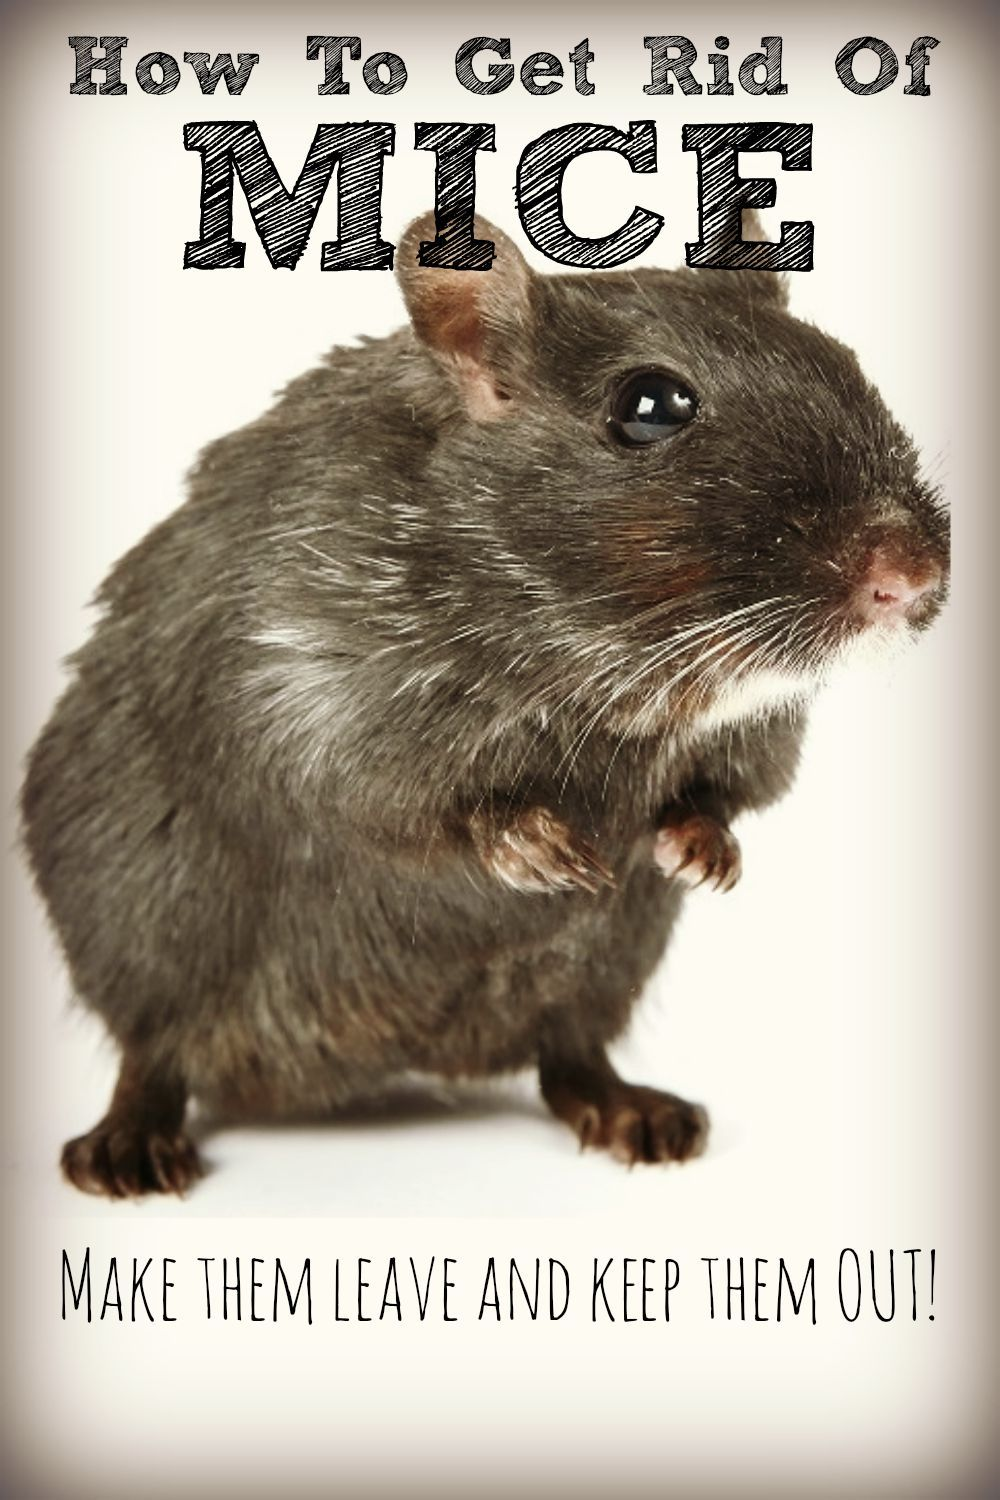 How To Keep Mice Out Of Your Home Getting Rid Of Mice Mice Repellent Rodent Control